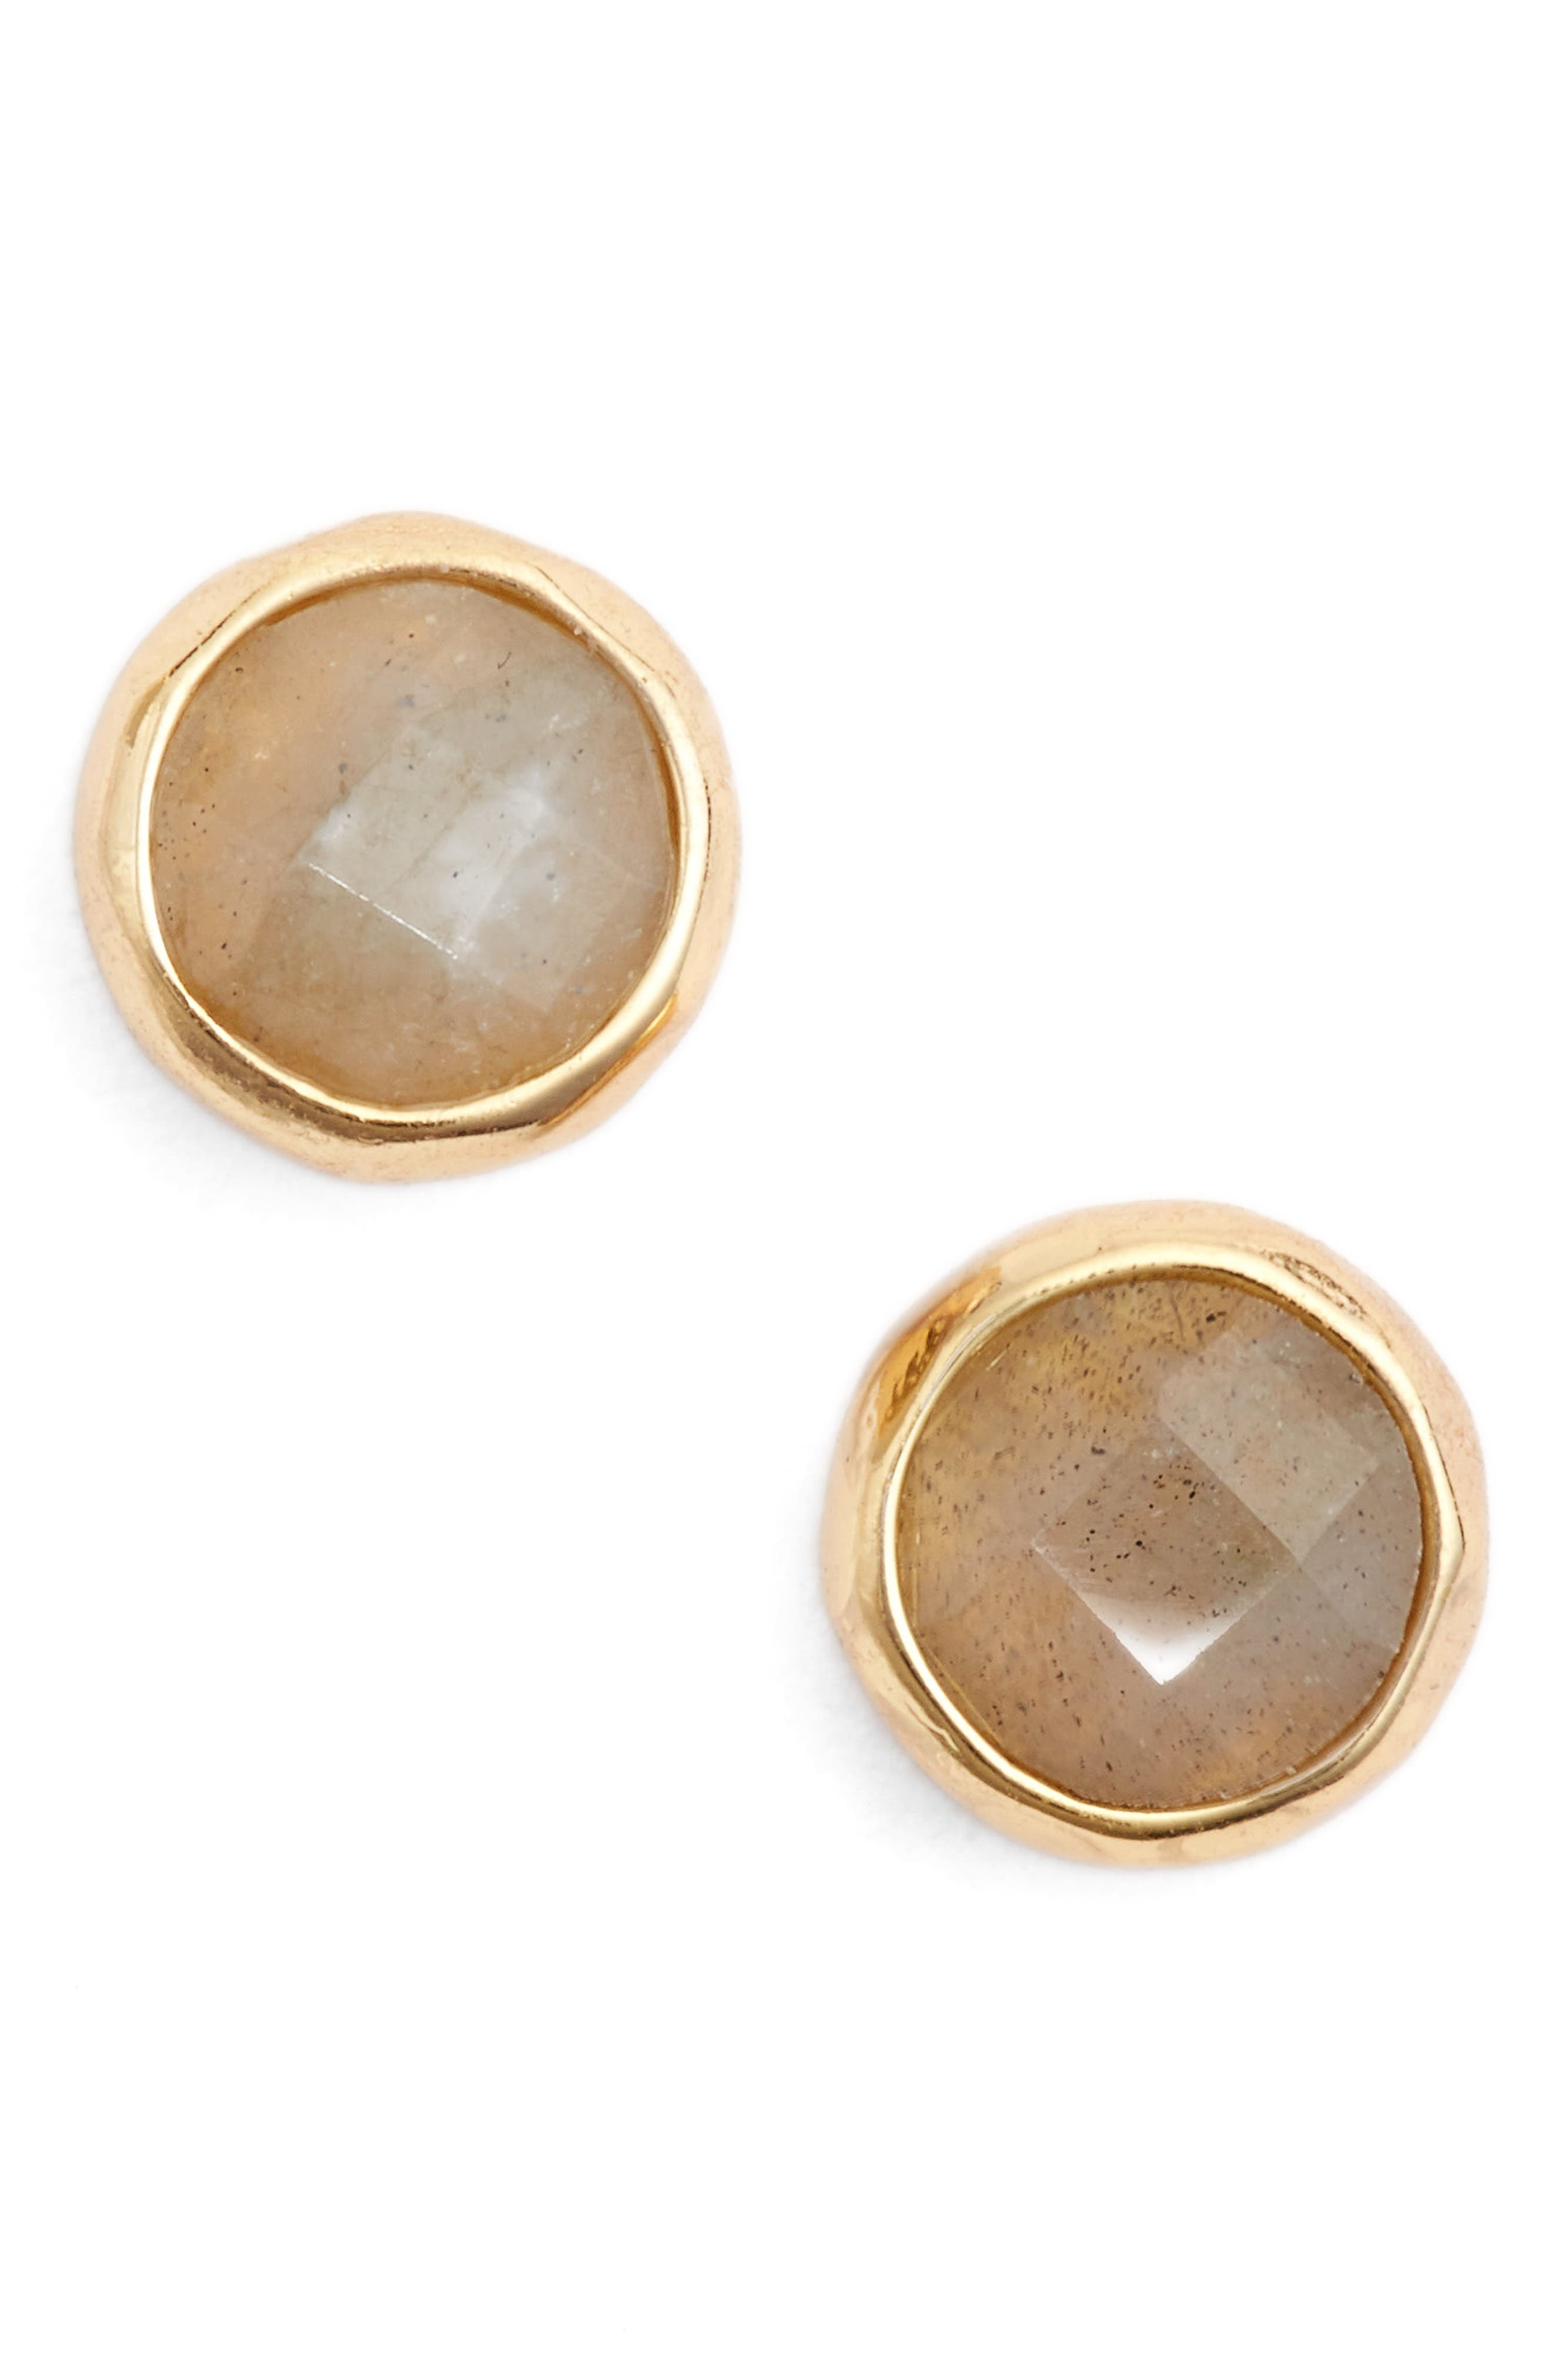 gorjana Balance Stud Earrings